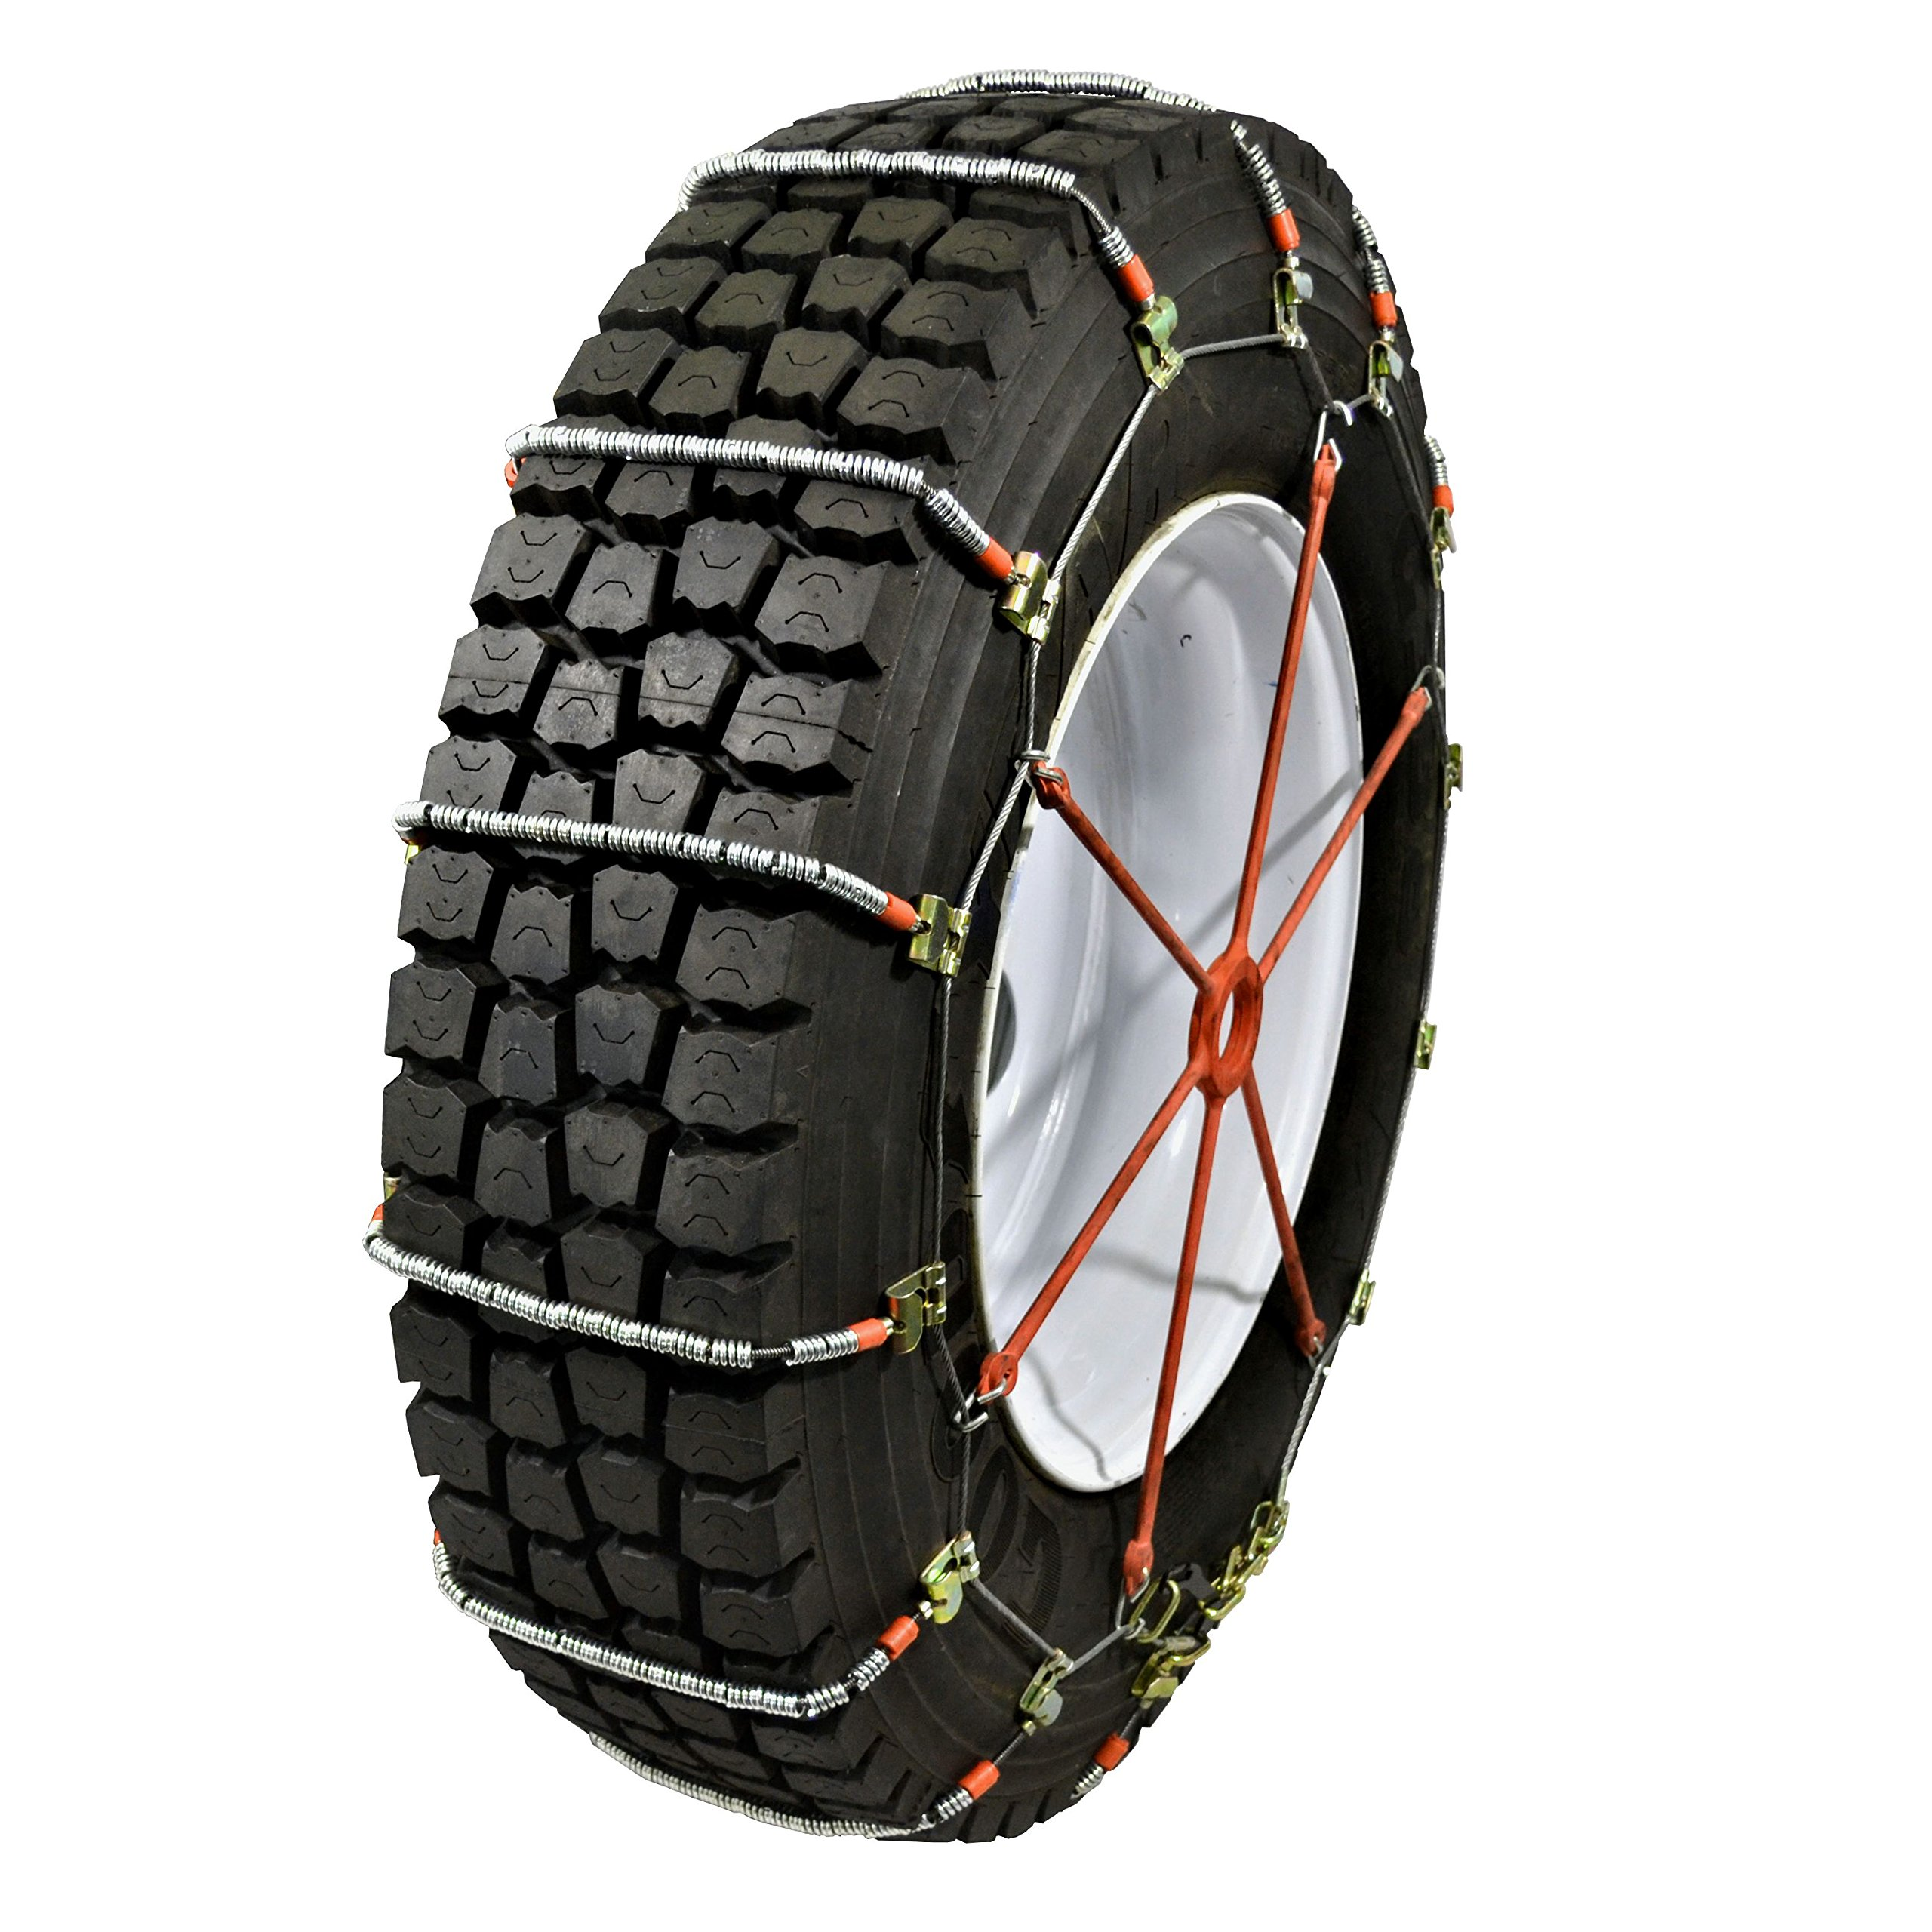 Quality Chain King Cobra Cam Commercial Truck Cable Tire Chains (2339)